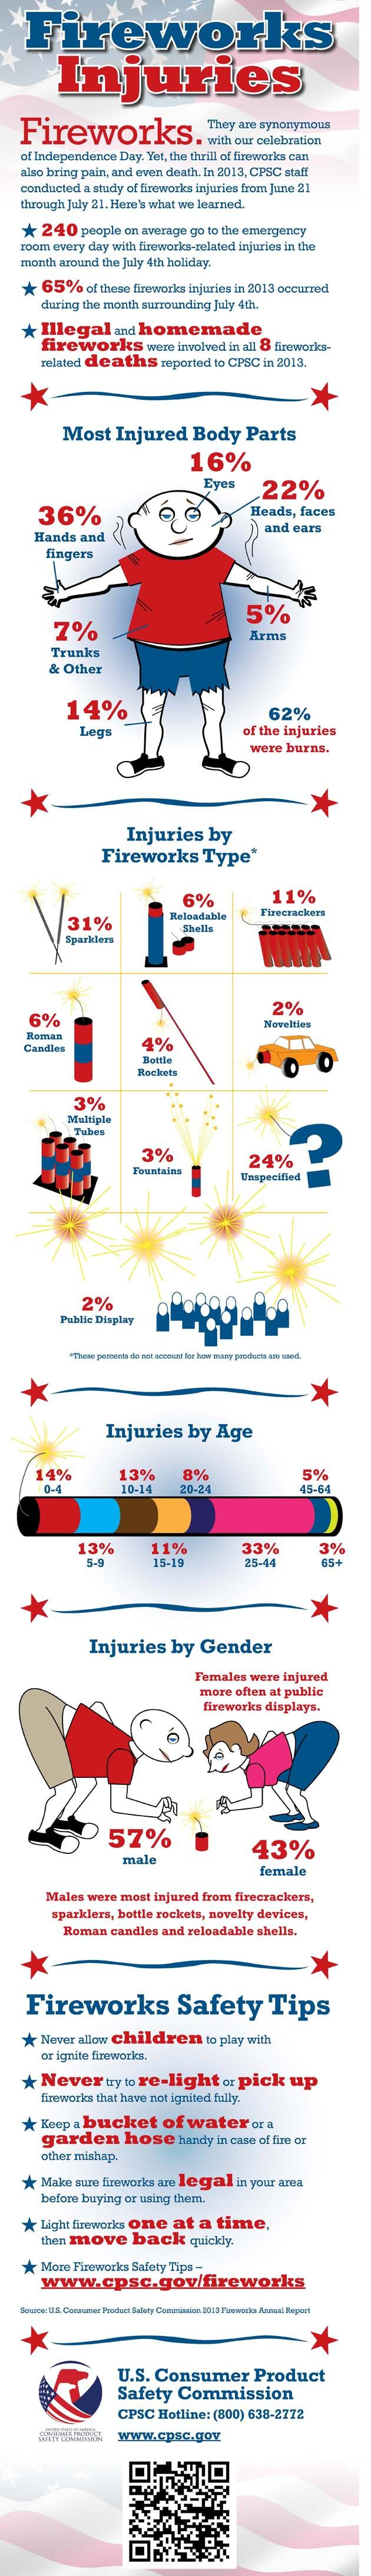 Fireworks safety infographic #USA #infographic #fireworks #independenceday